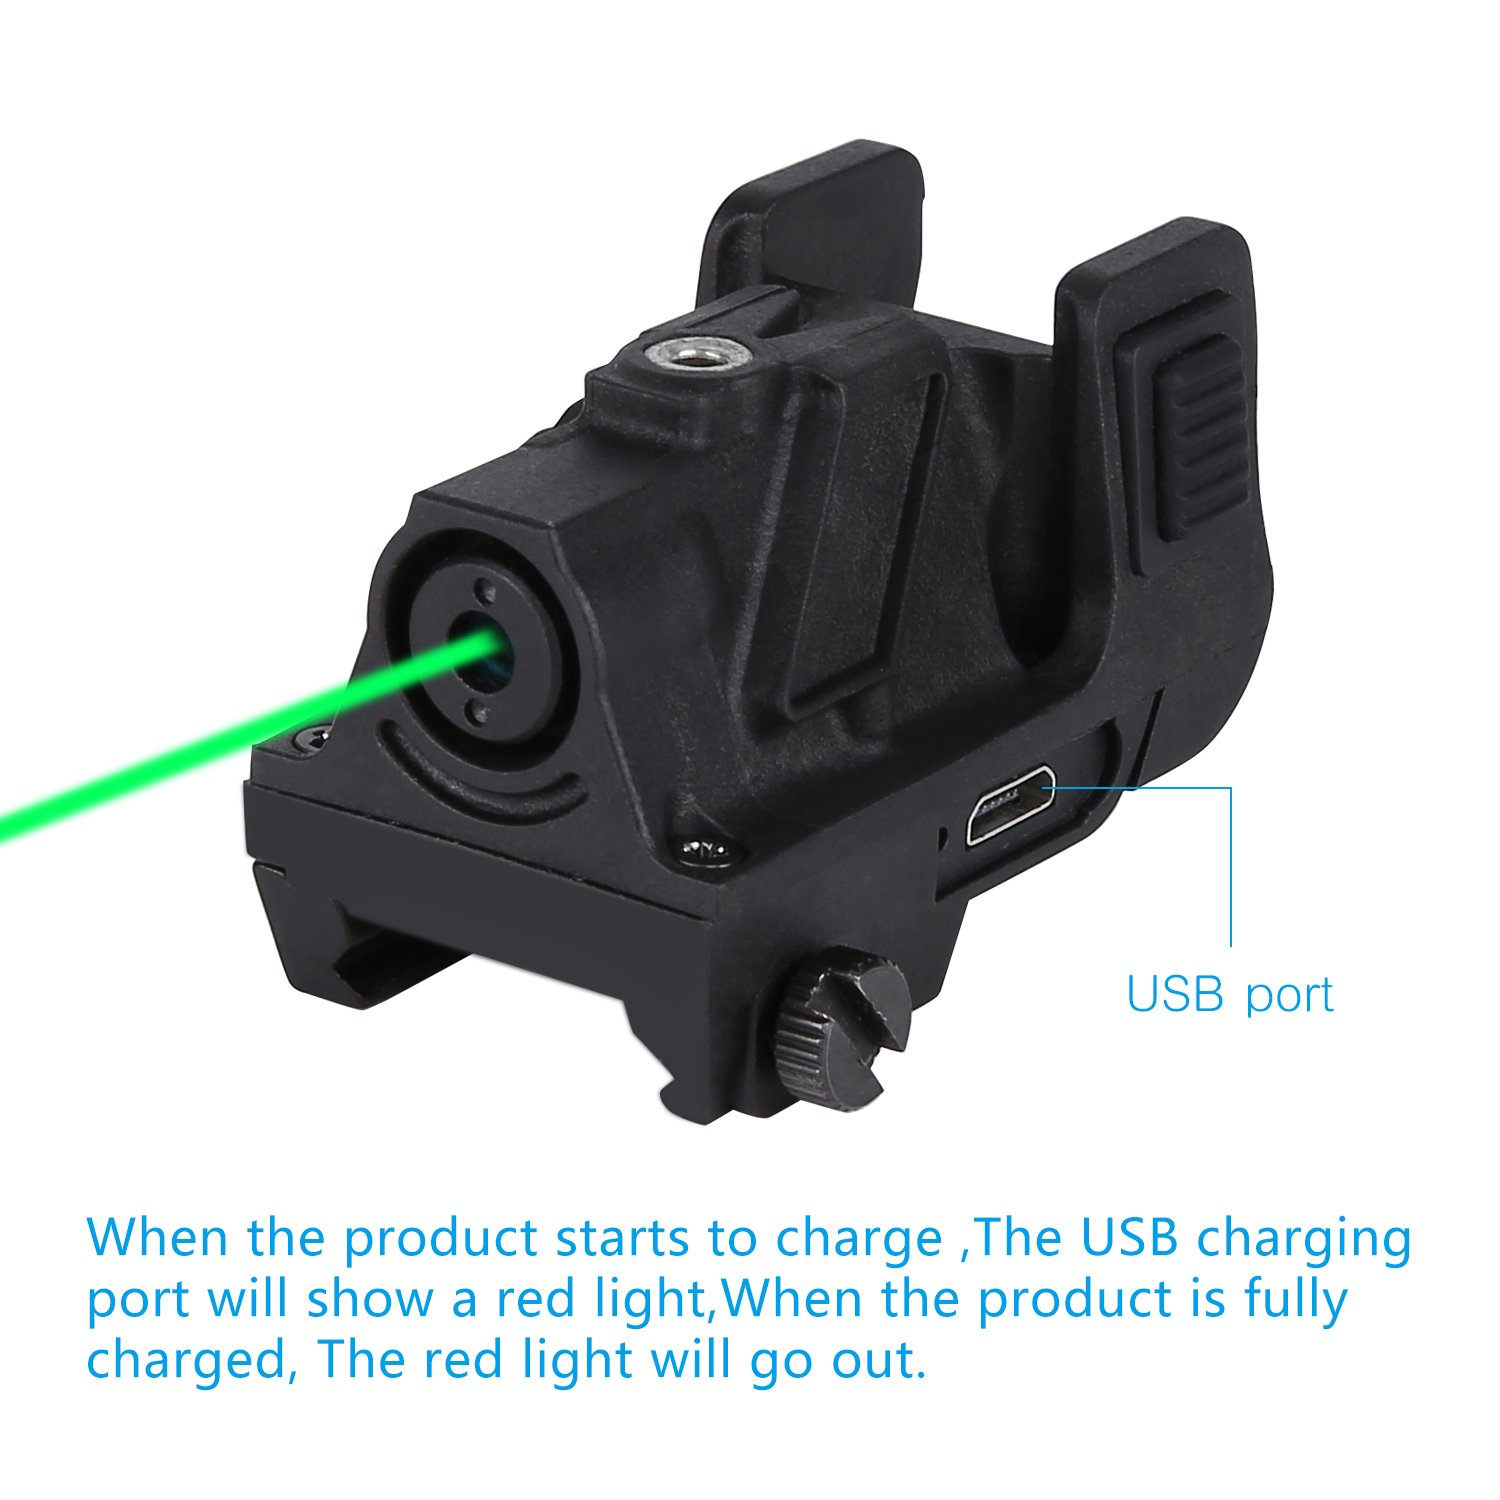 QR-Laser 03G(TM) Subcompact Green Dot Laser Sight with 20mm Rail Picatinny for Pistol,Handgun,etc. by QR-Laser